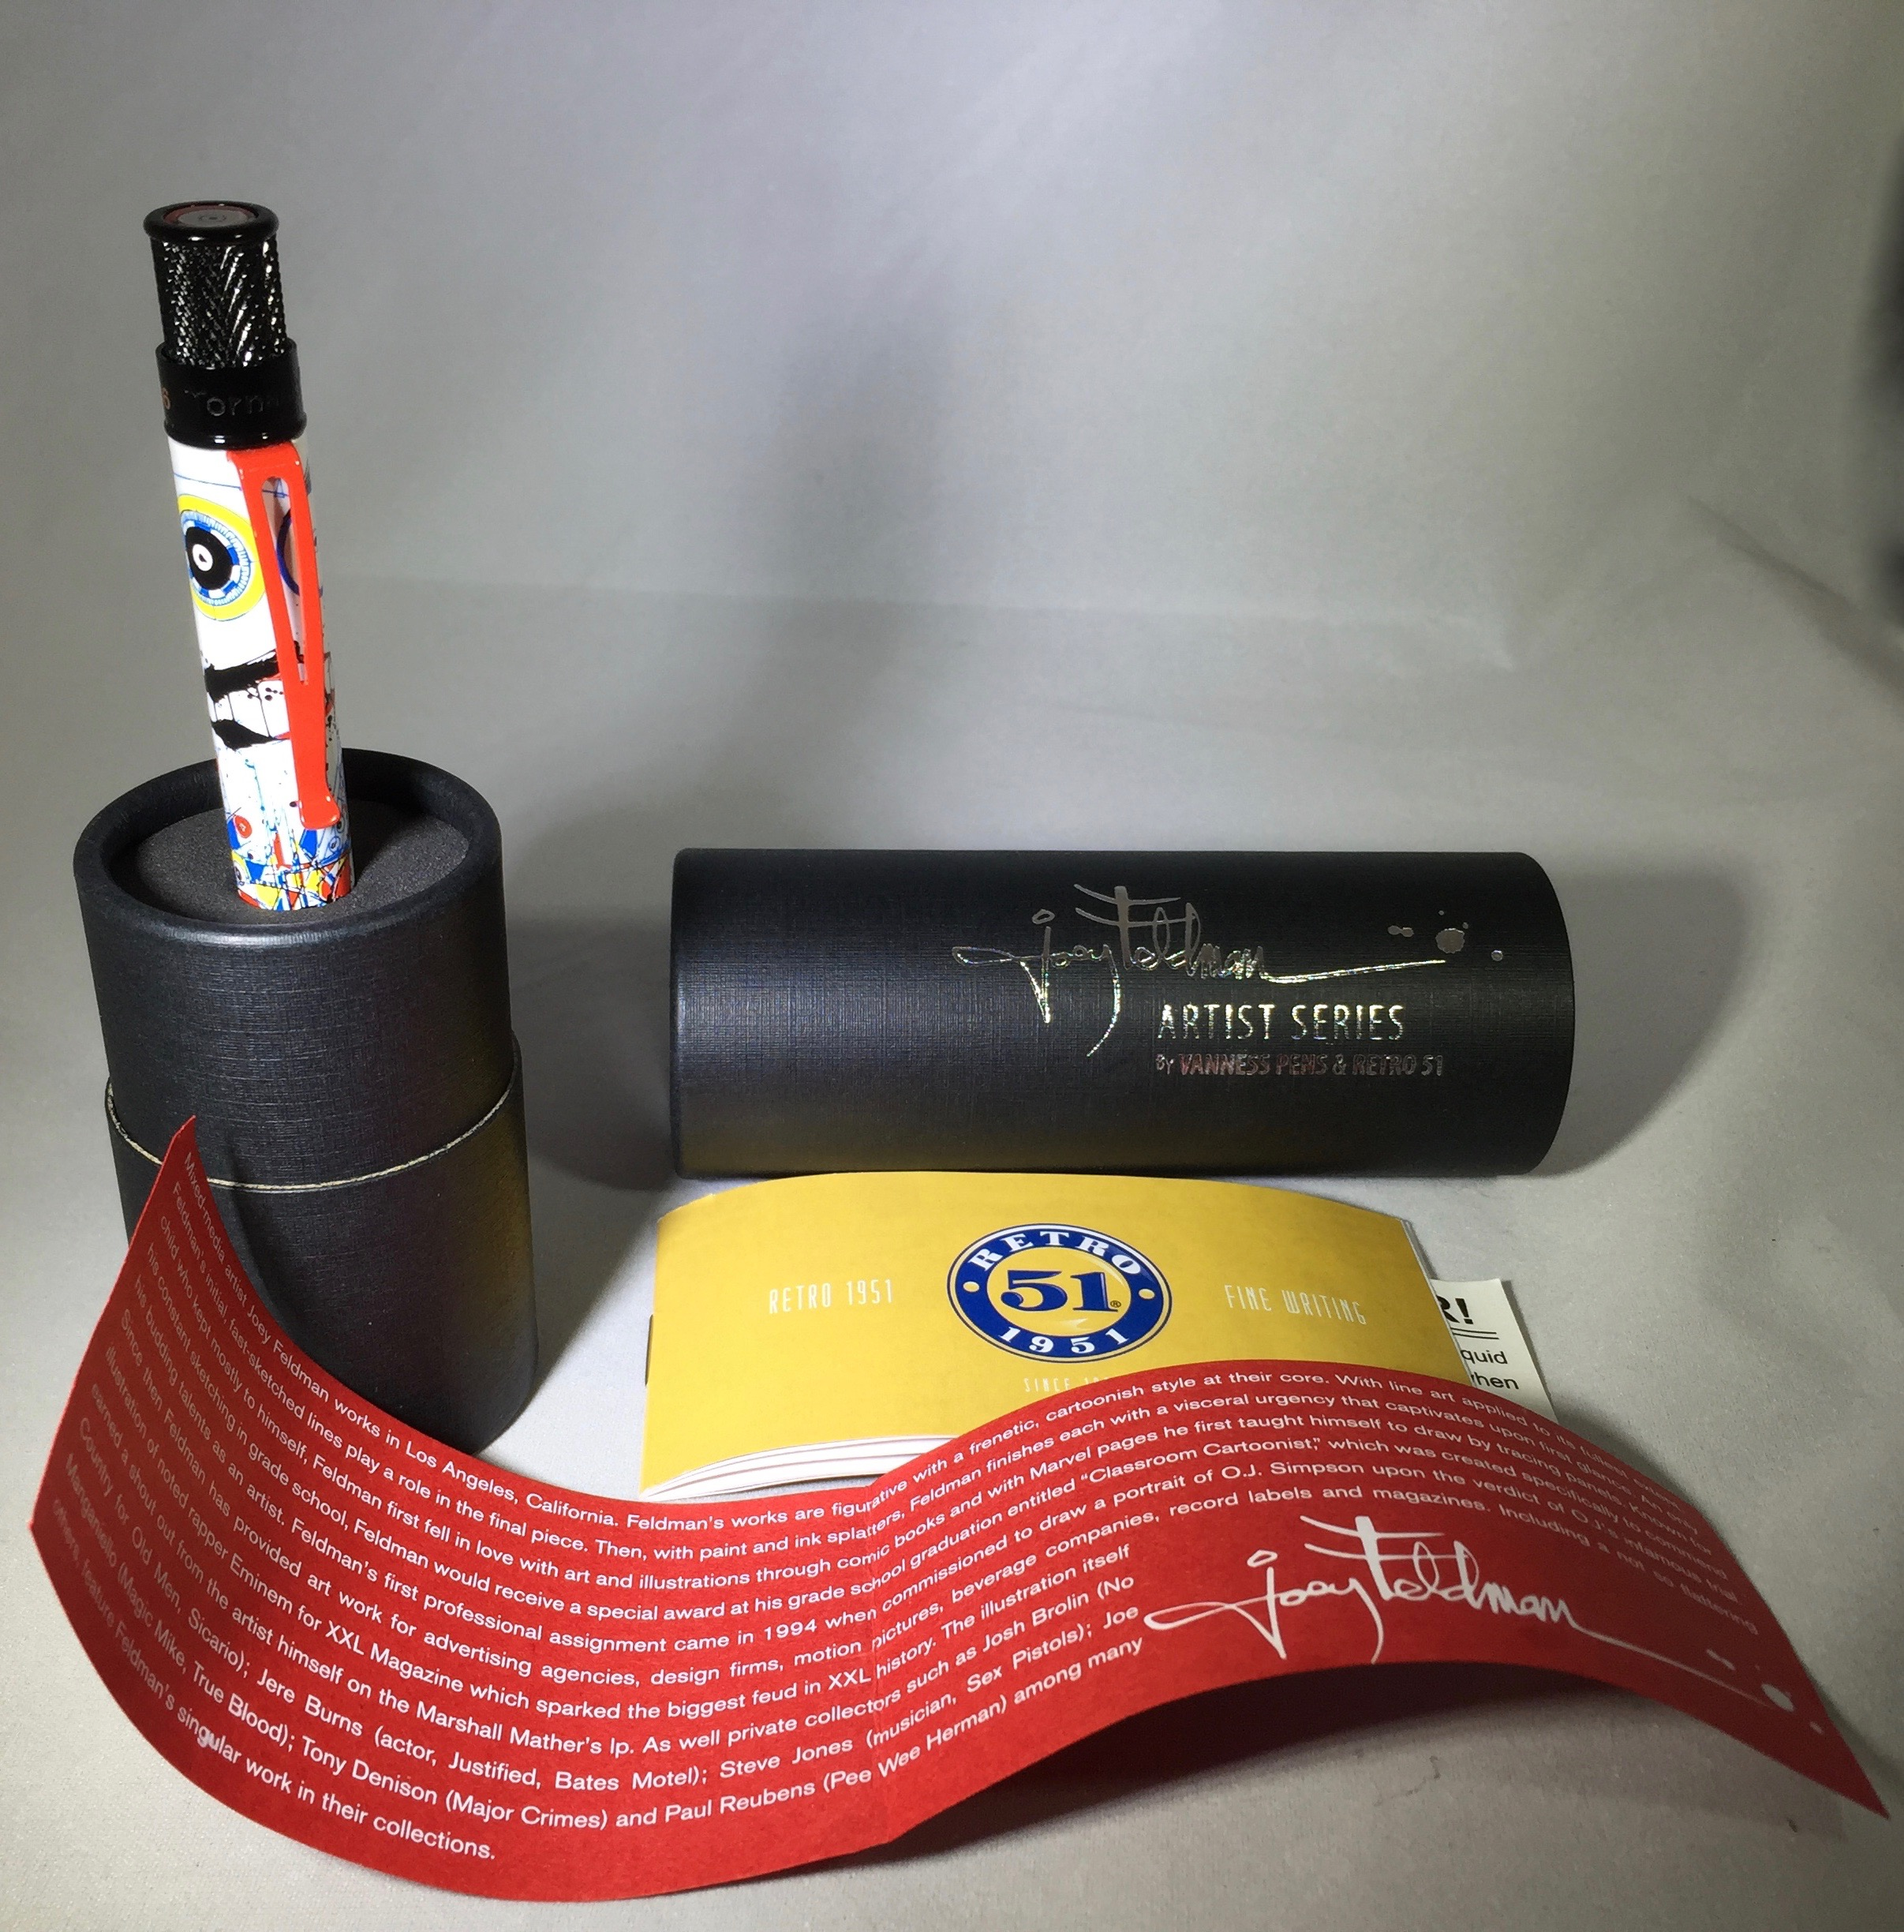 Inside the tube, you will find the pen and some inserts.